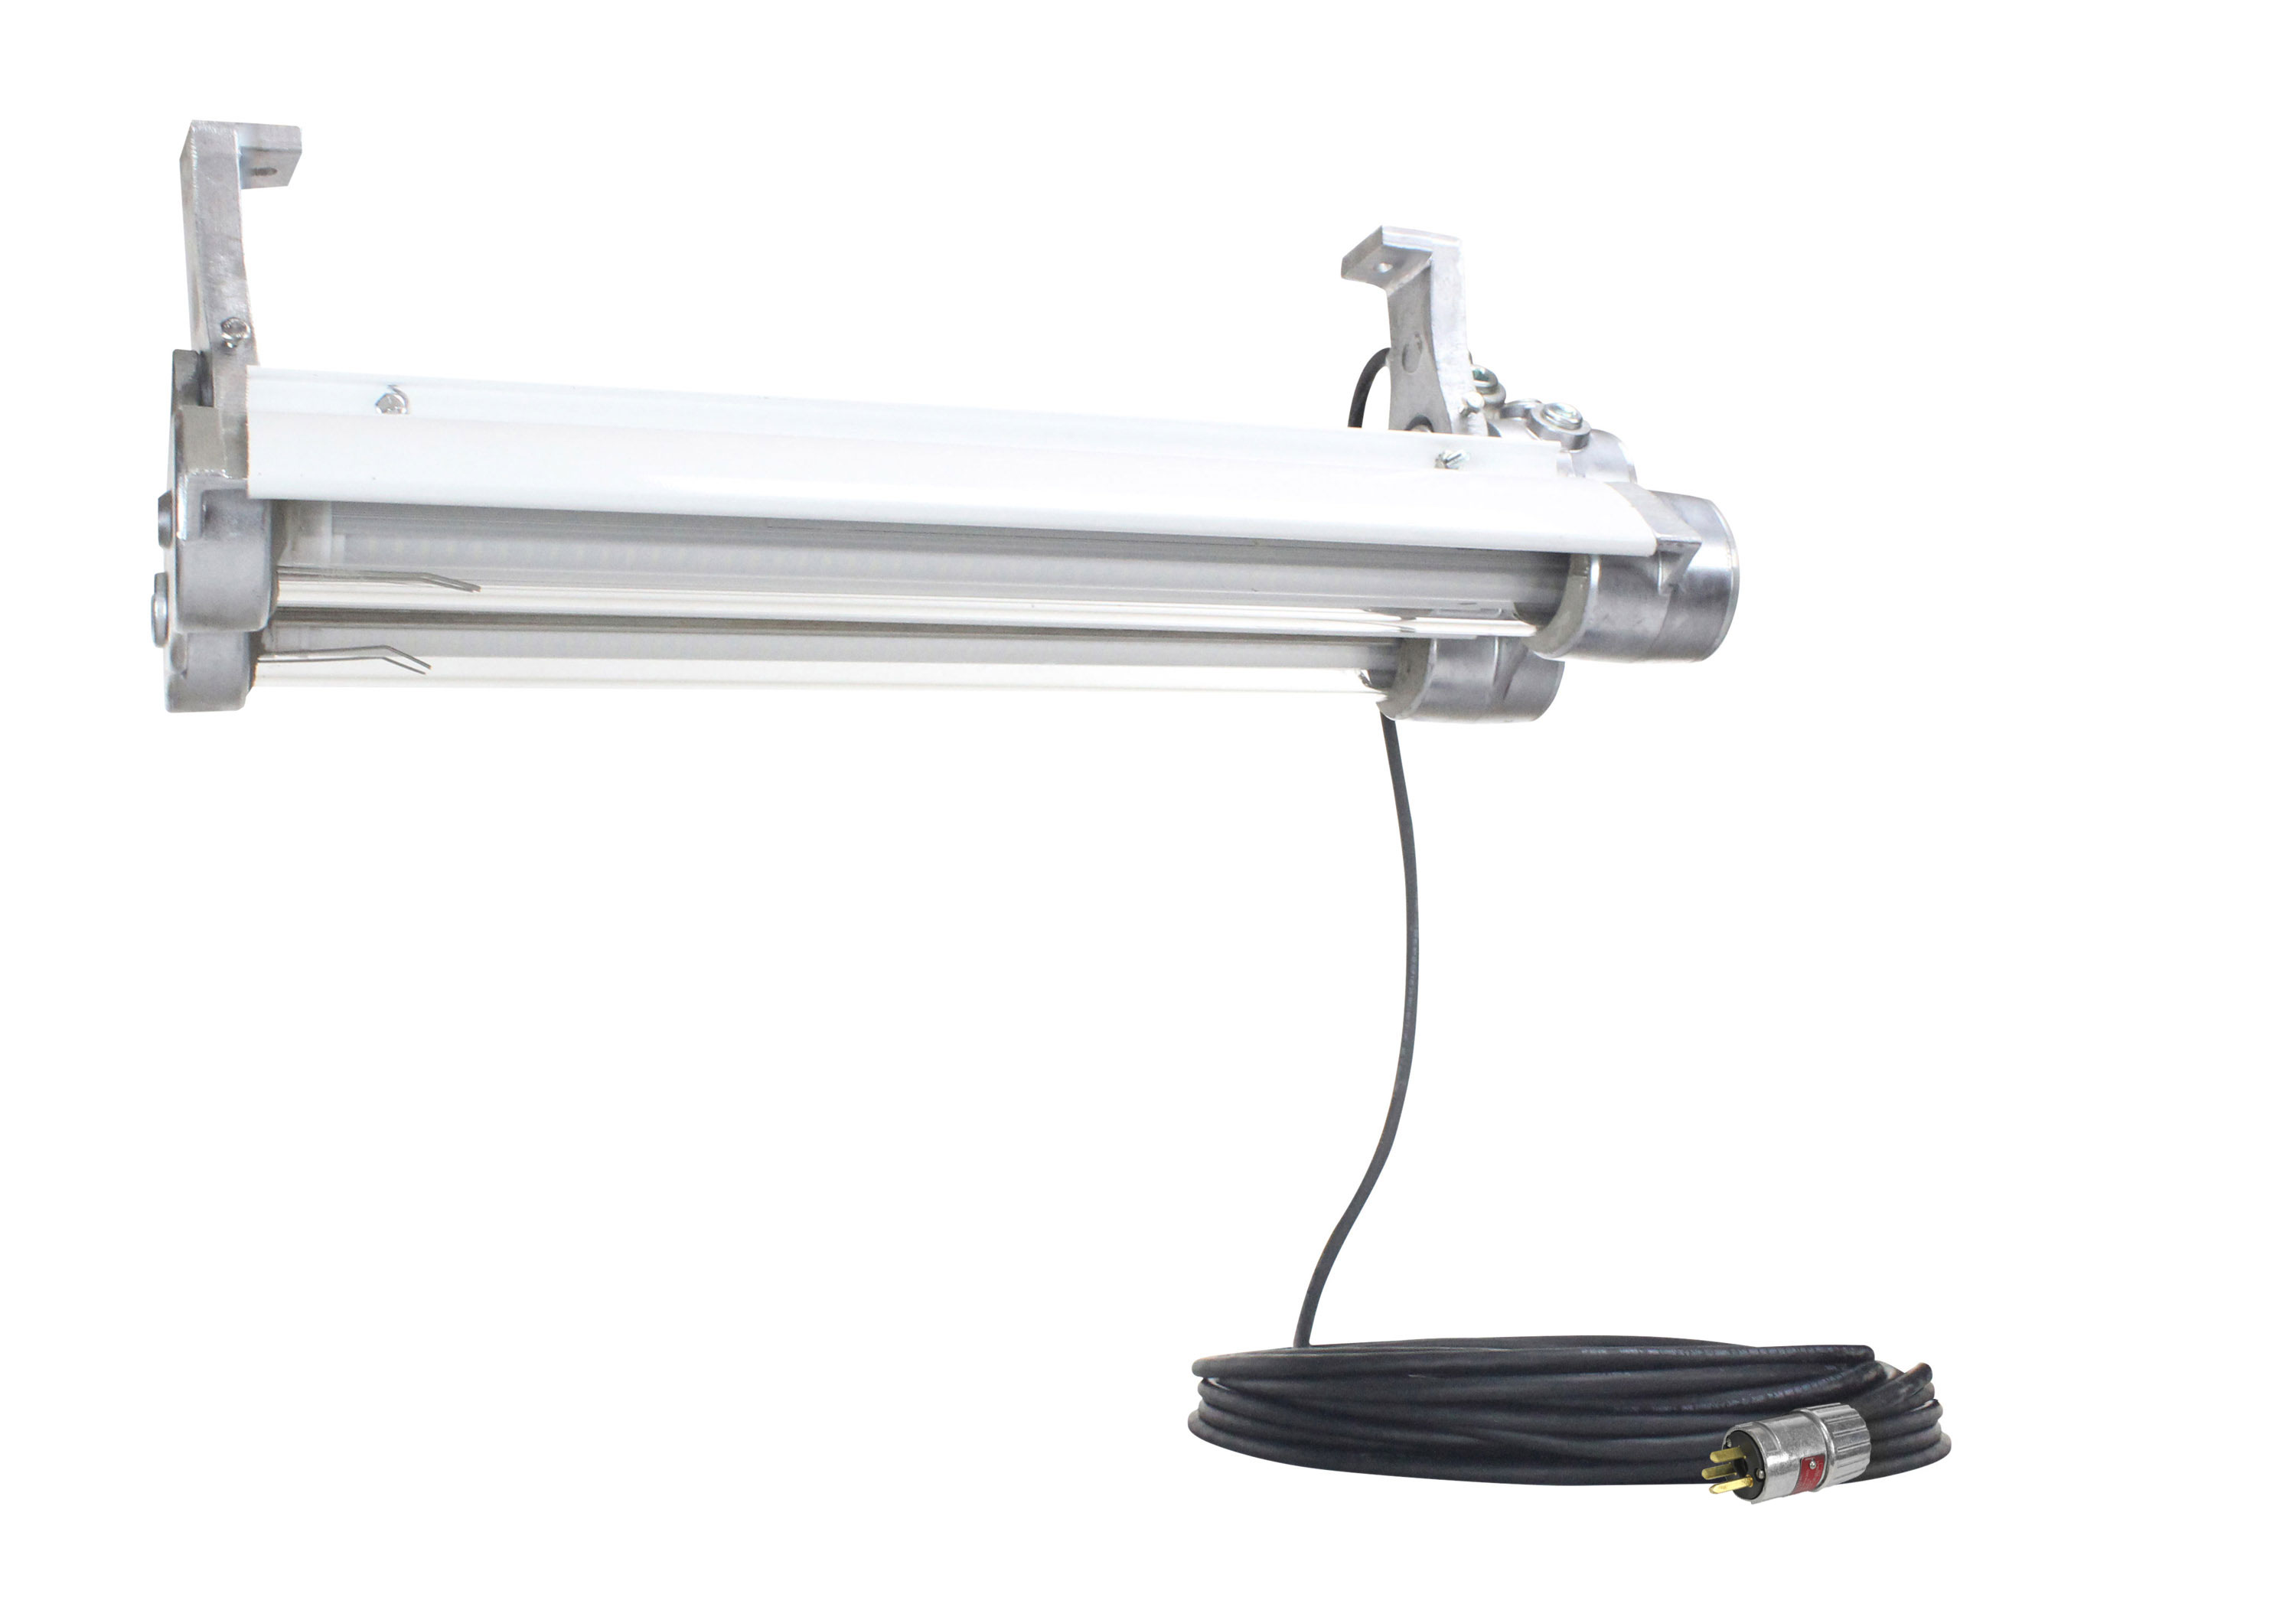 Larson Electronics Releases An Explosion Proof Uv Light